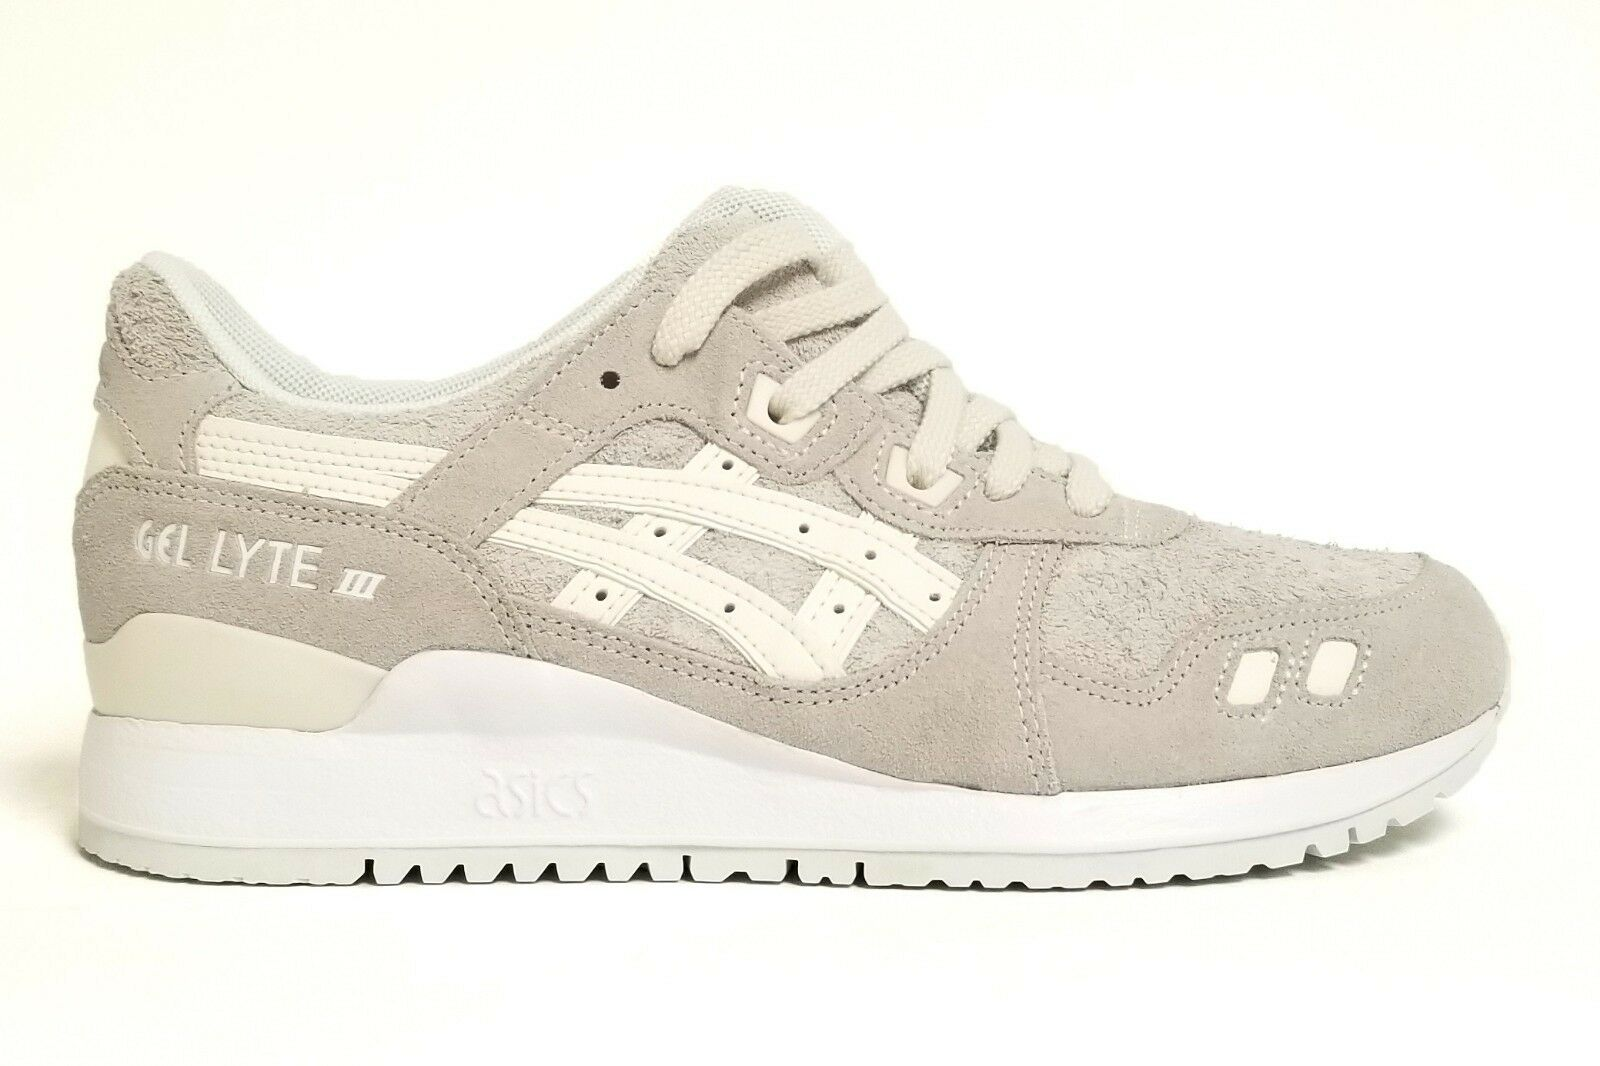 Asics Tiger Women's GEL-LYTE III CREAM Shoes H865L-0000 c The latest discount shoes for men and women